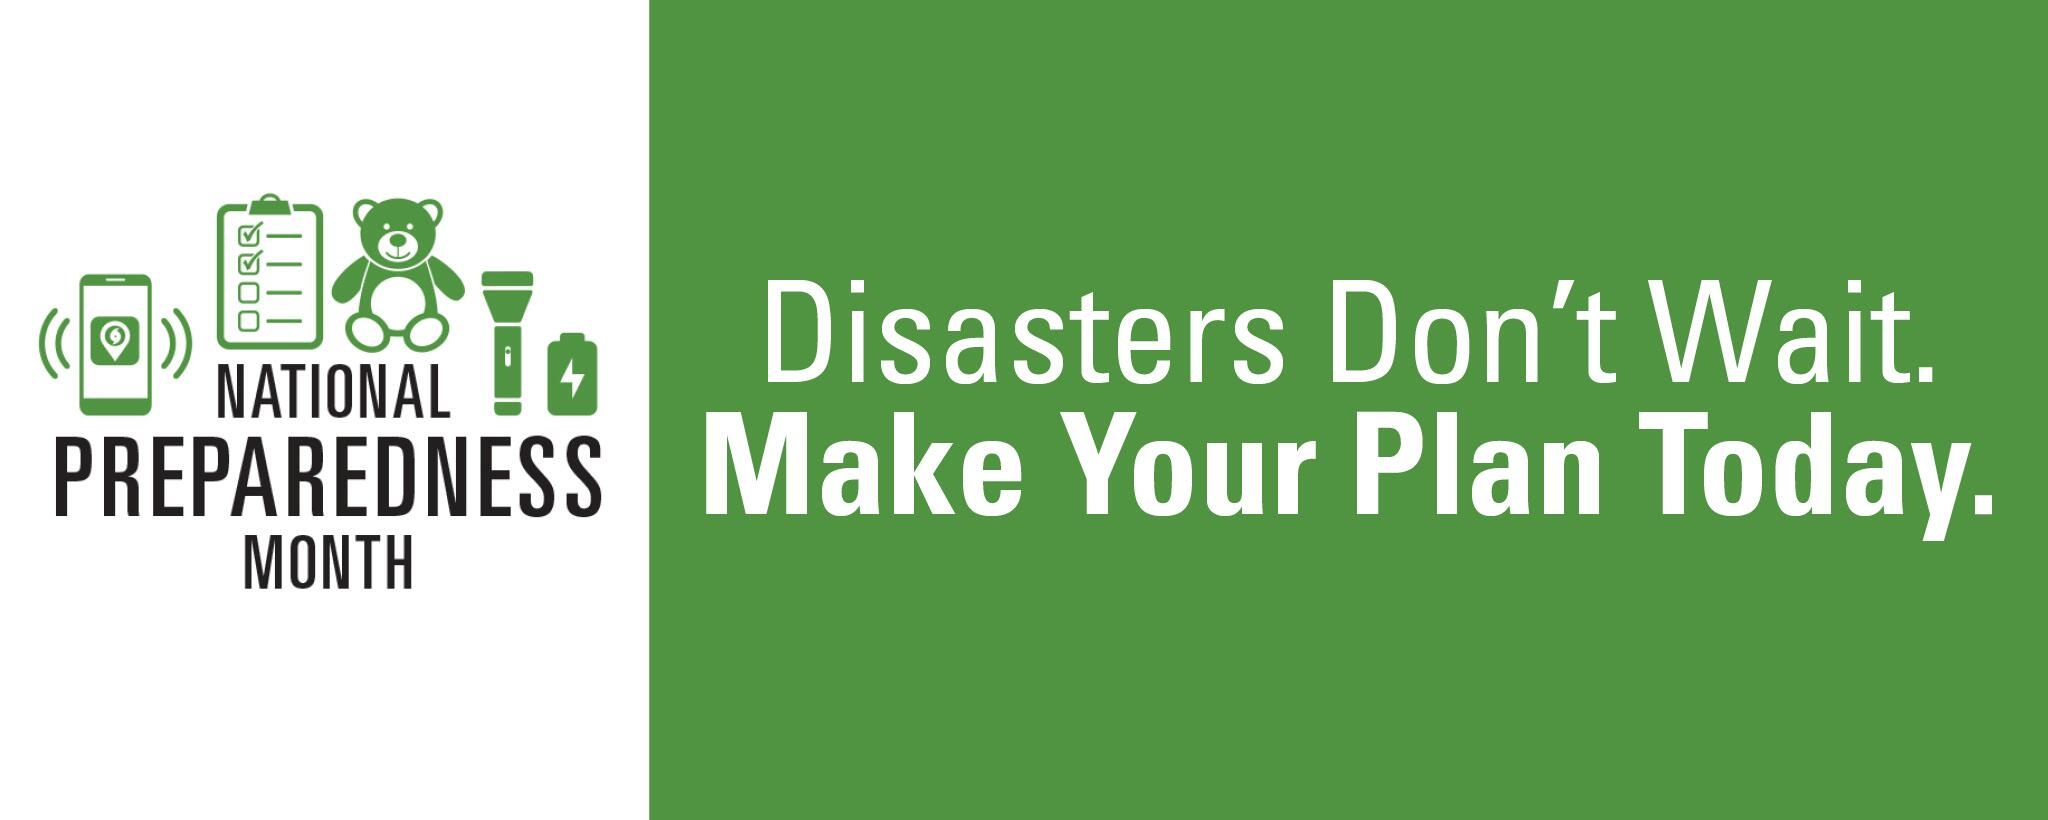 National Preparedness Month. Disasters don't wait. Make your plan today.